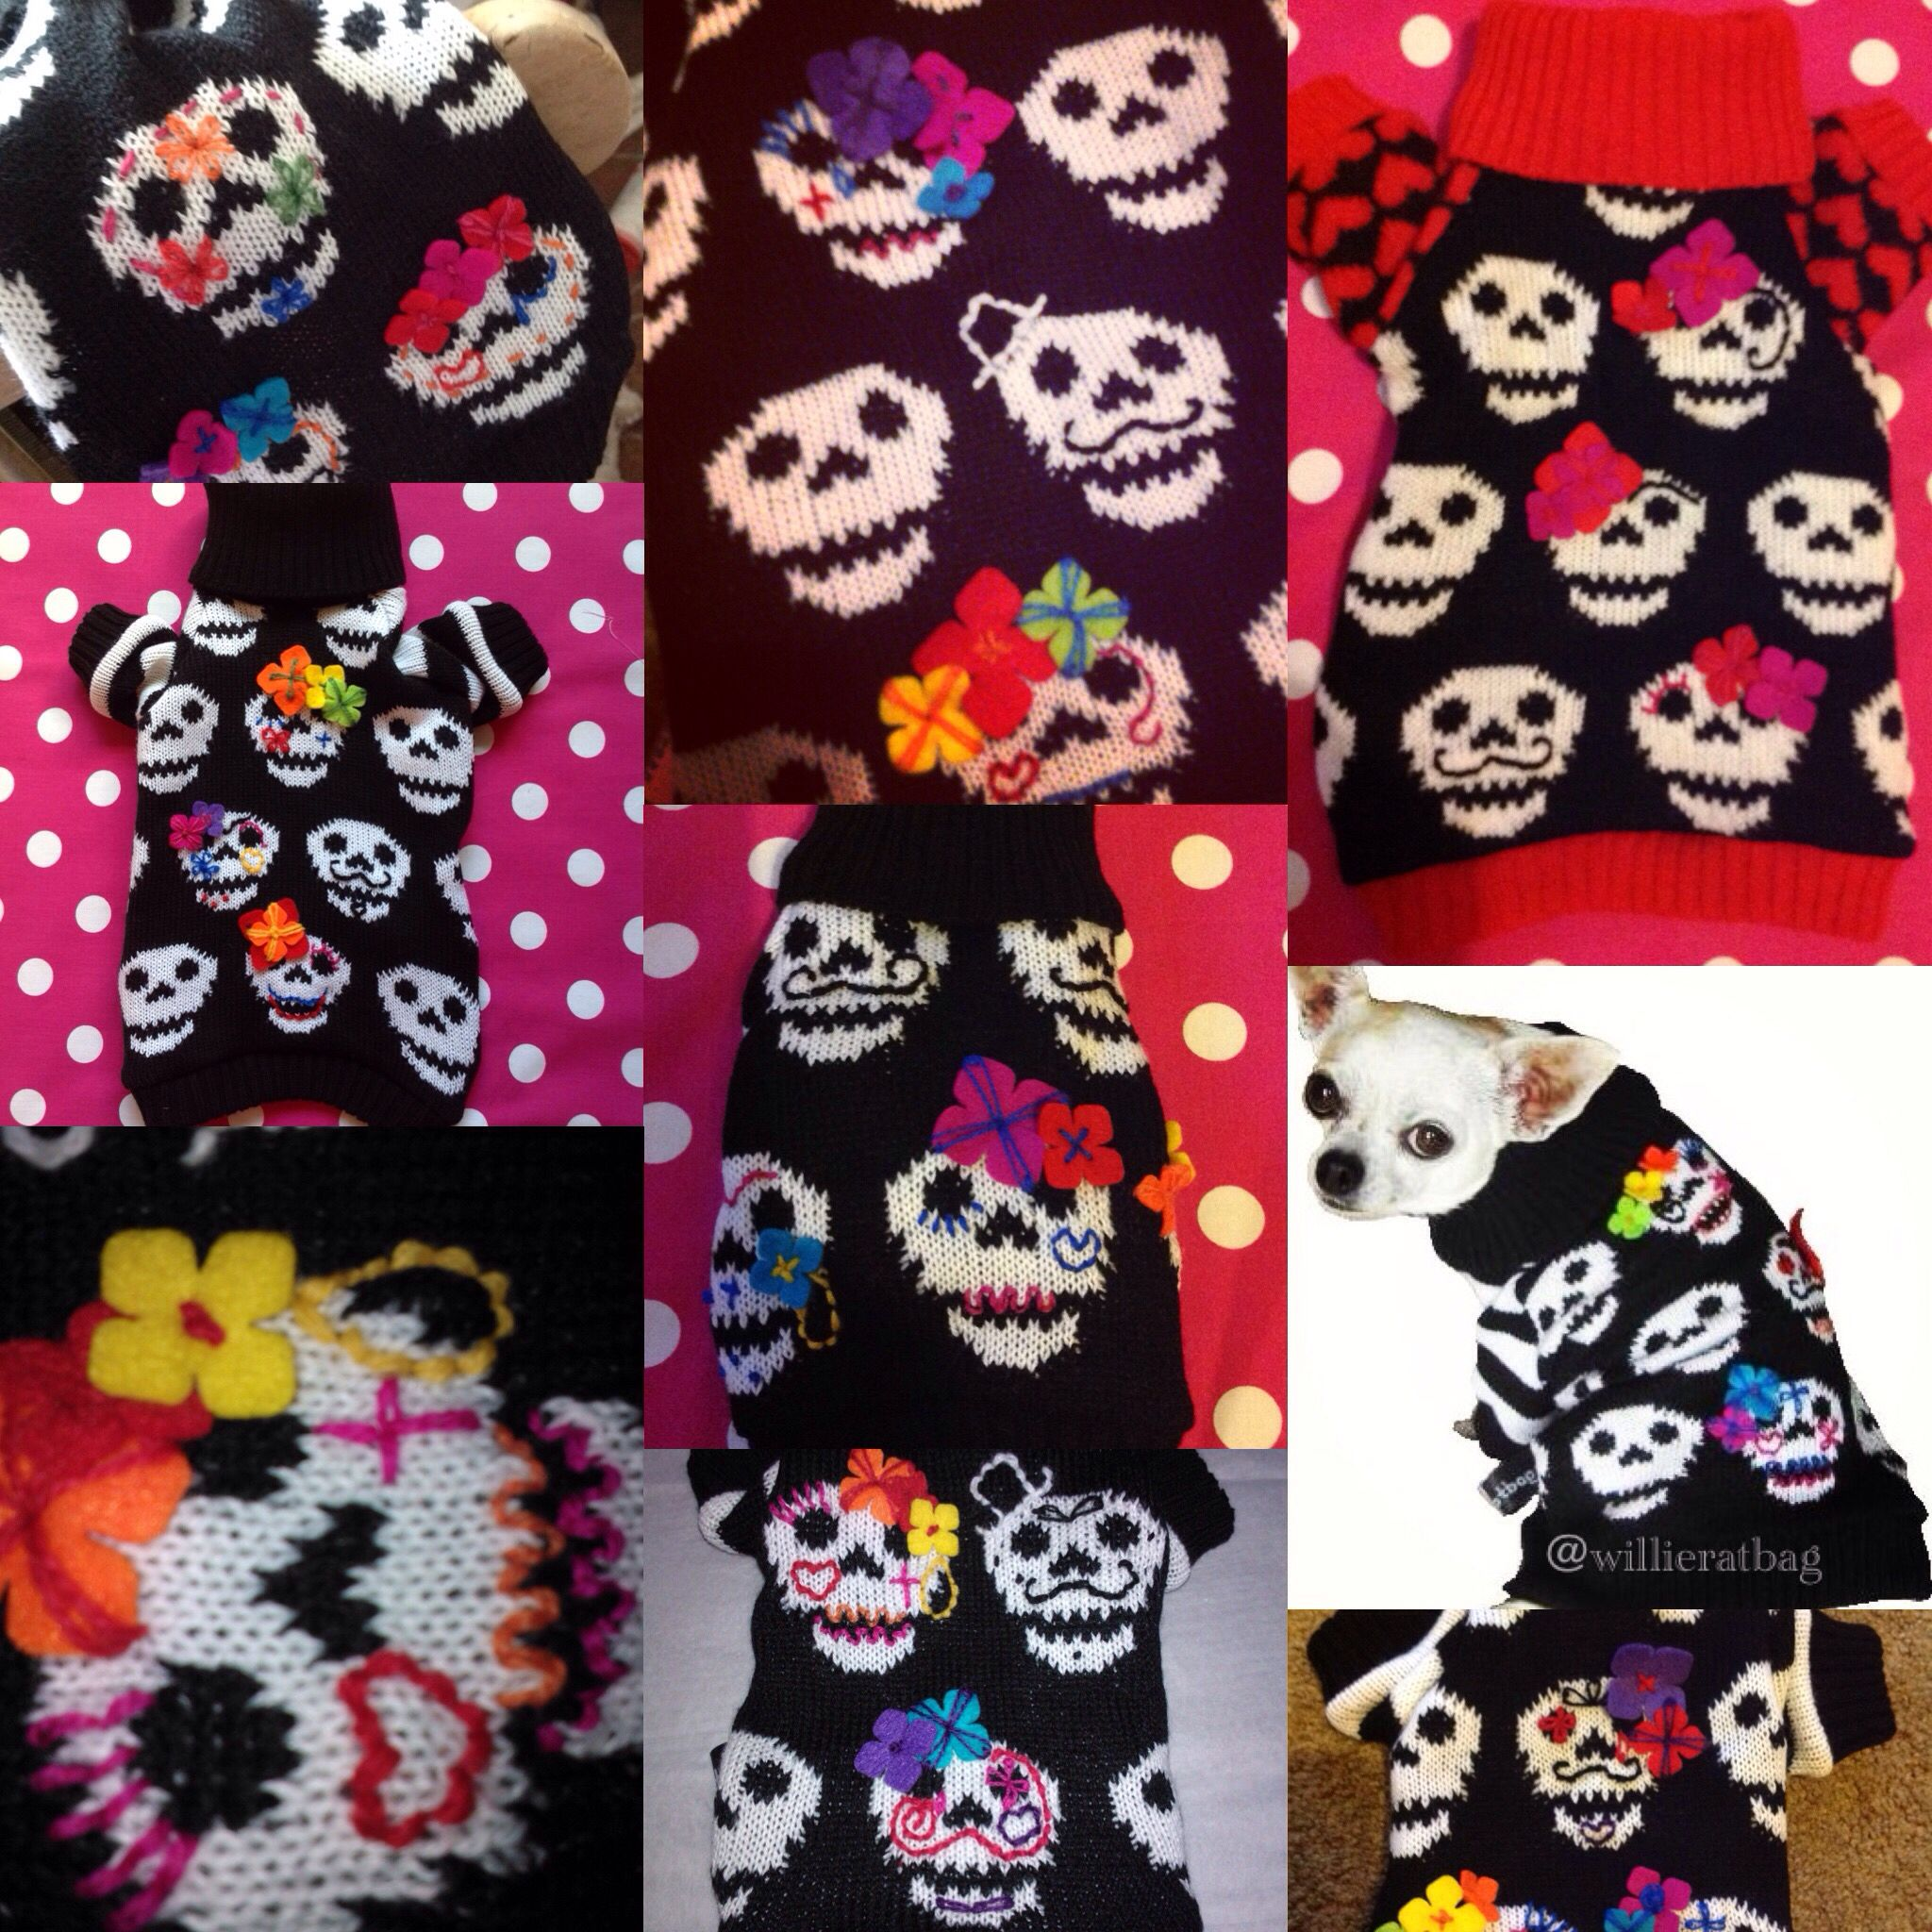 Collage of day of dead dog sweater from willieratbag everyone is